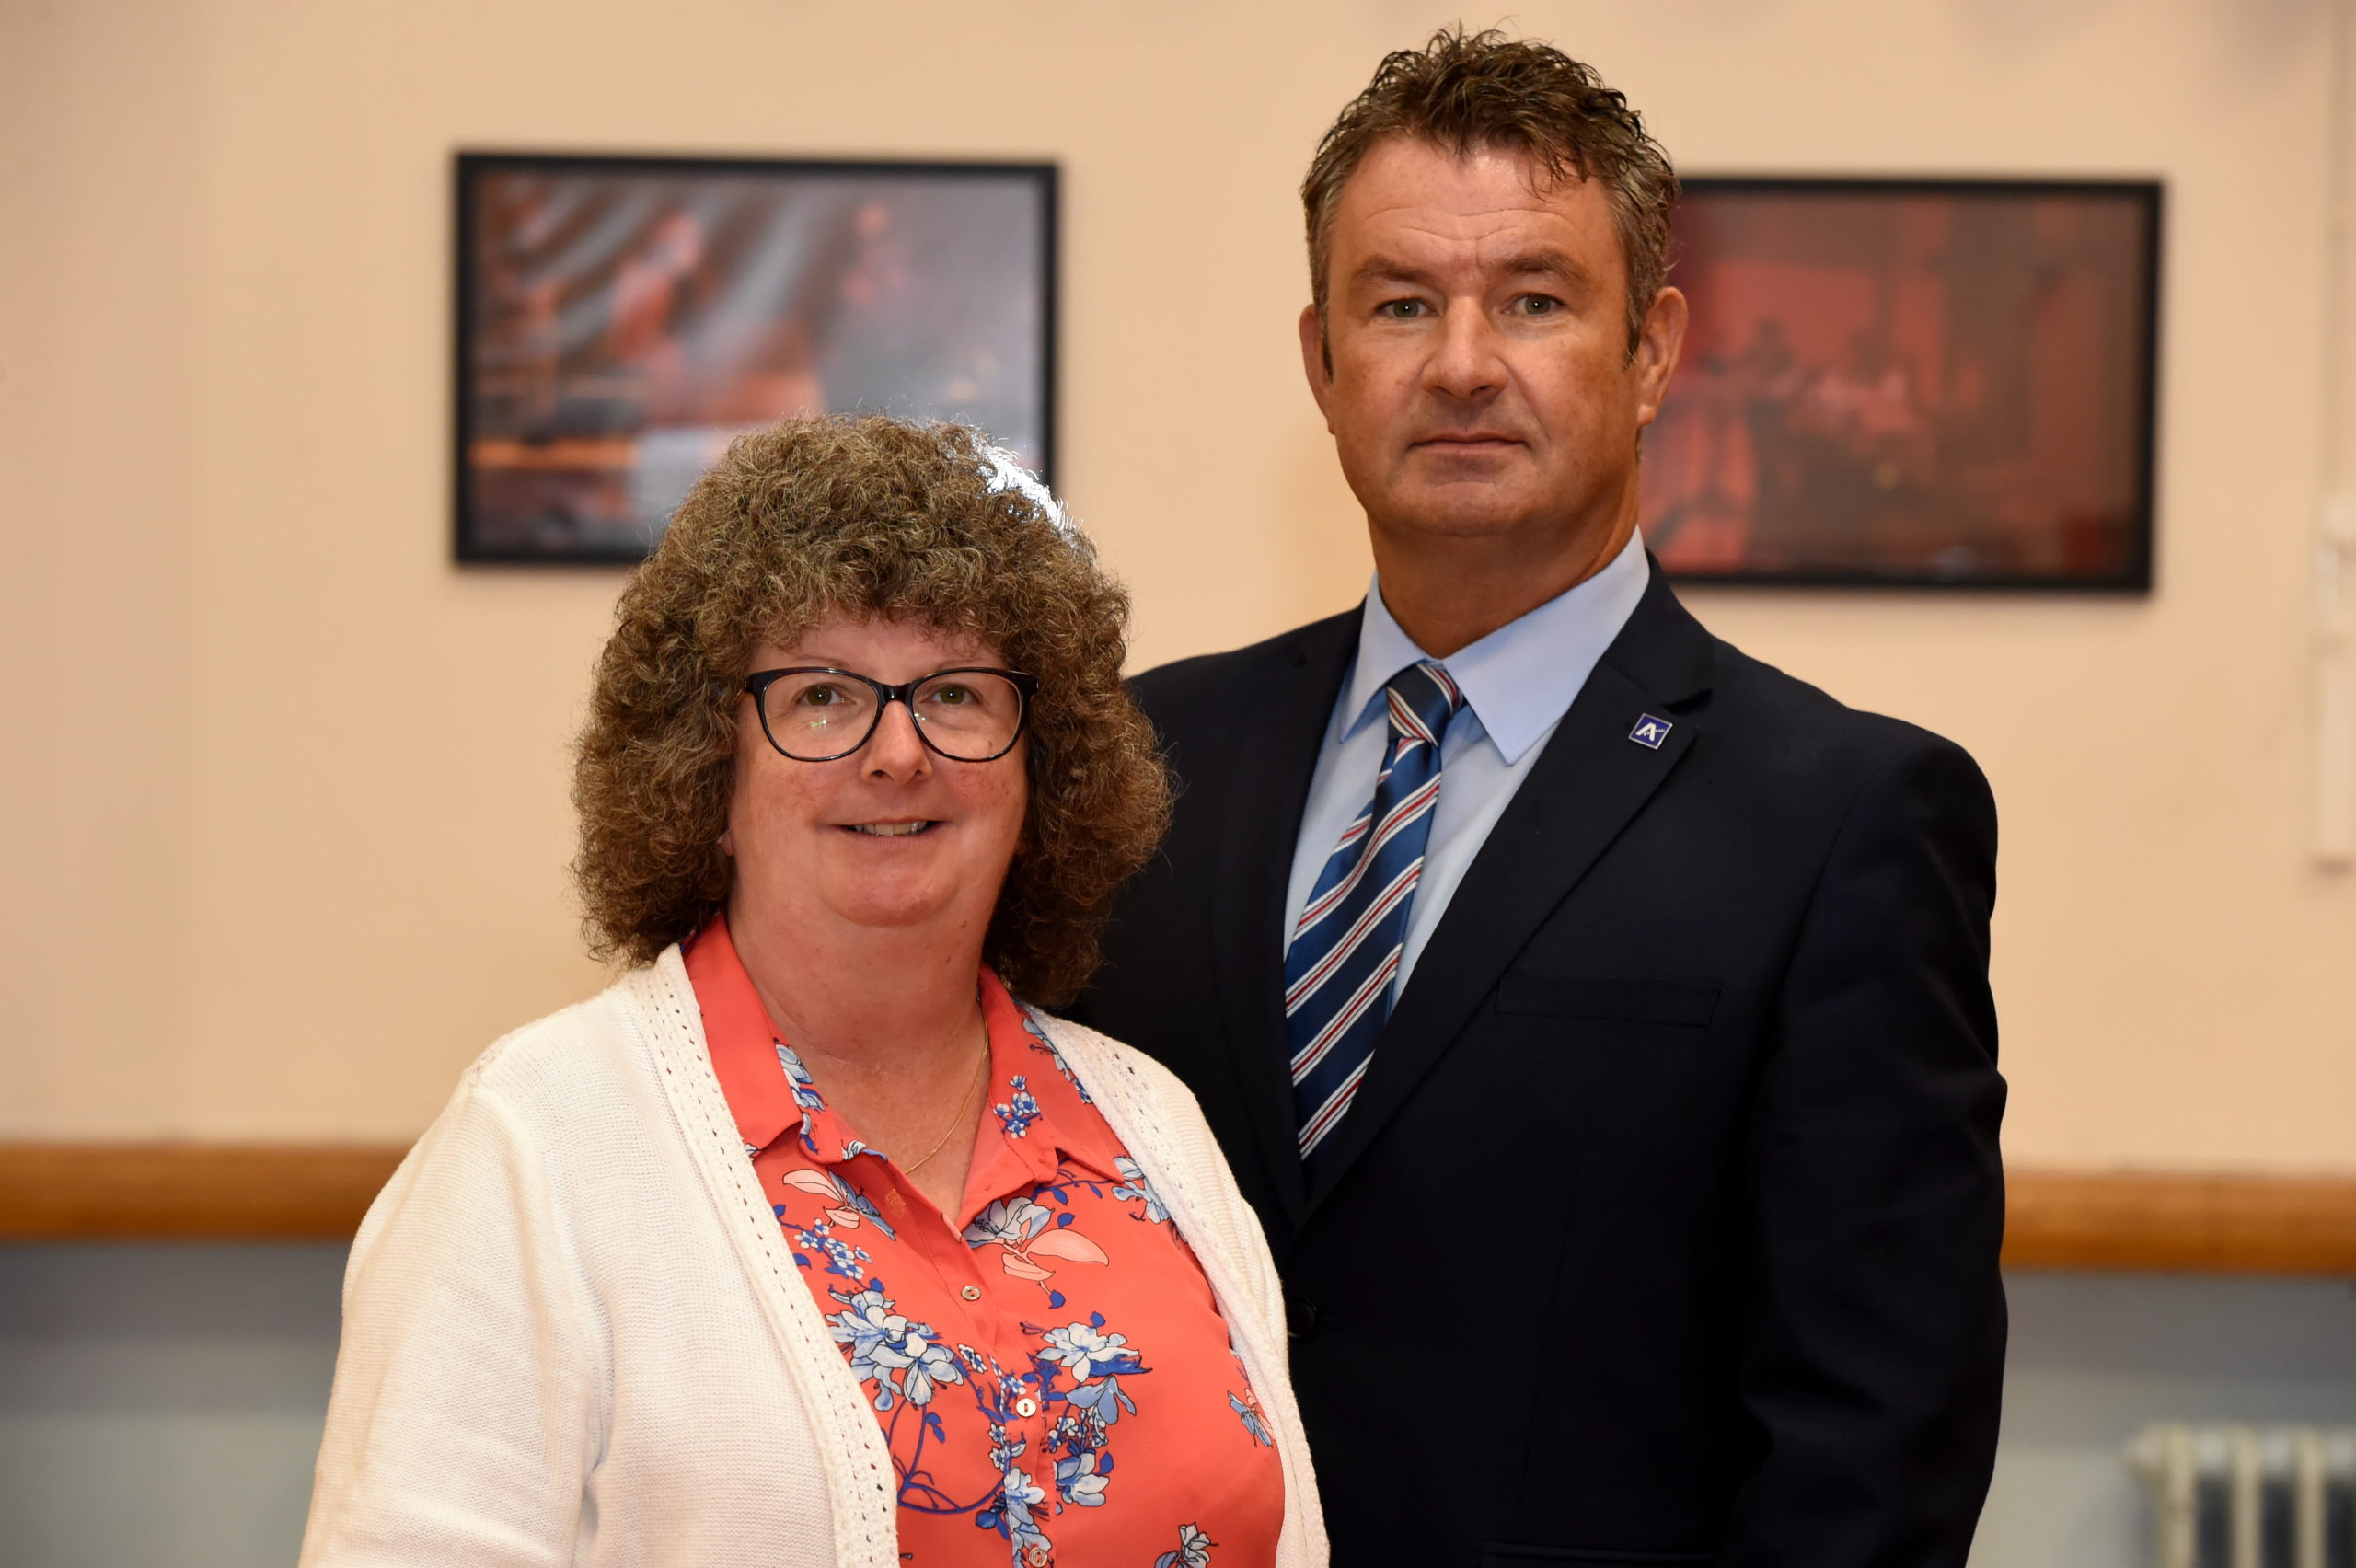 Picture of Councillor Gillian Owen and Vincent Docherty (Aberdeenshire Council's Education and Children's Services Committee chair and the council's Head of Education).